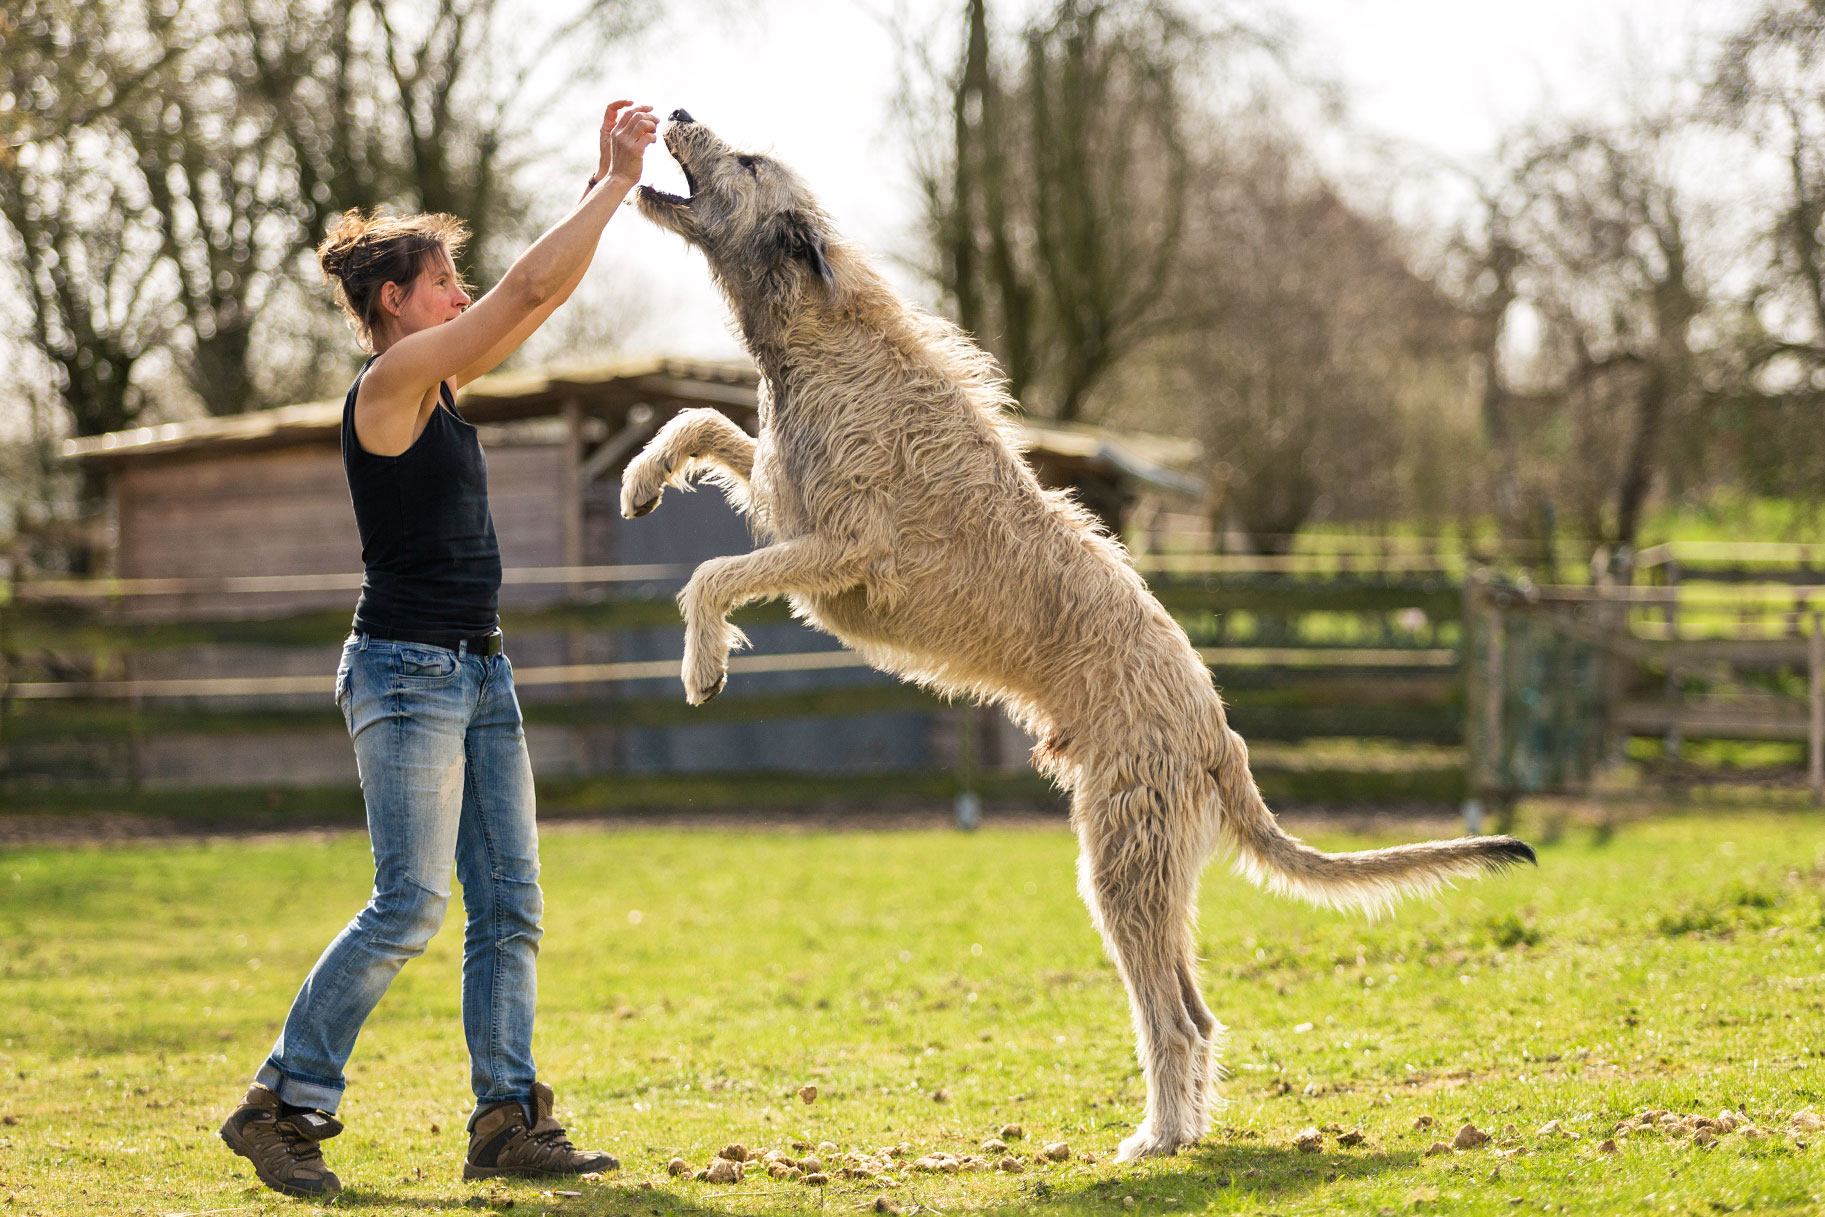 What Are the Tallest Dog Breeds? Irish Wolfhound, Great Dane